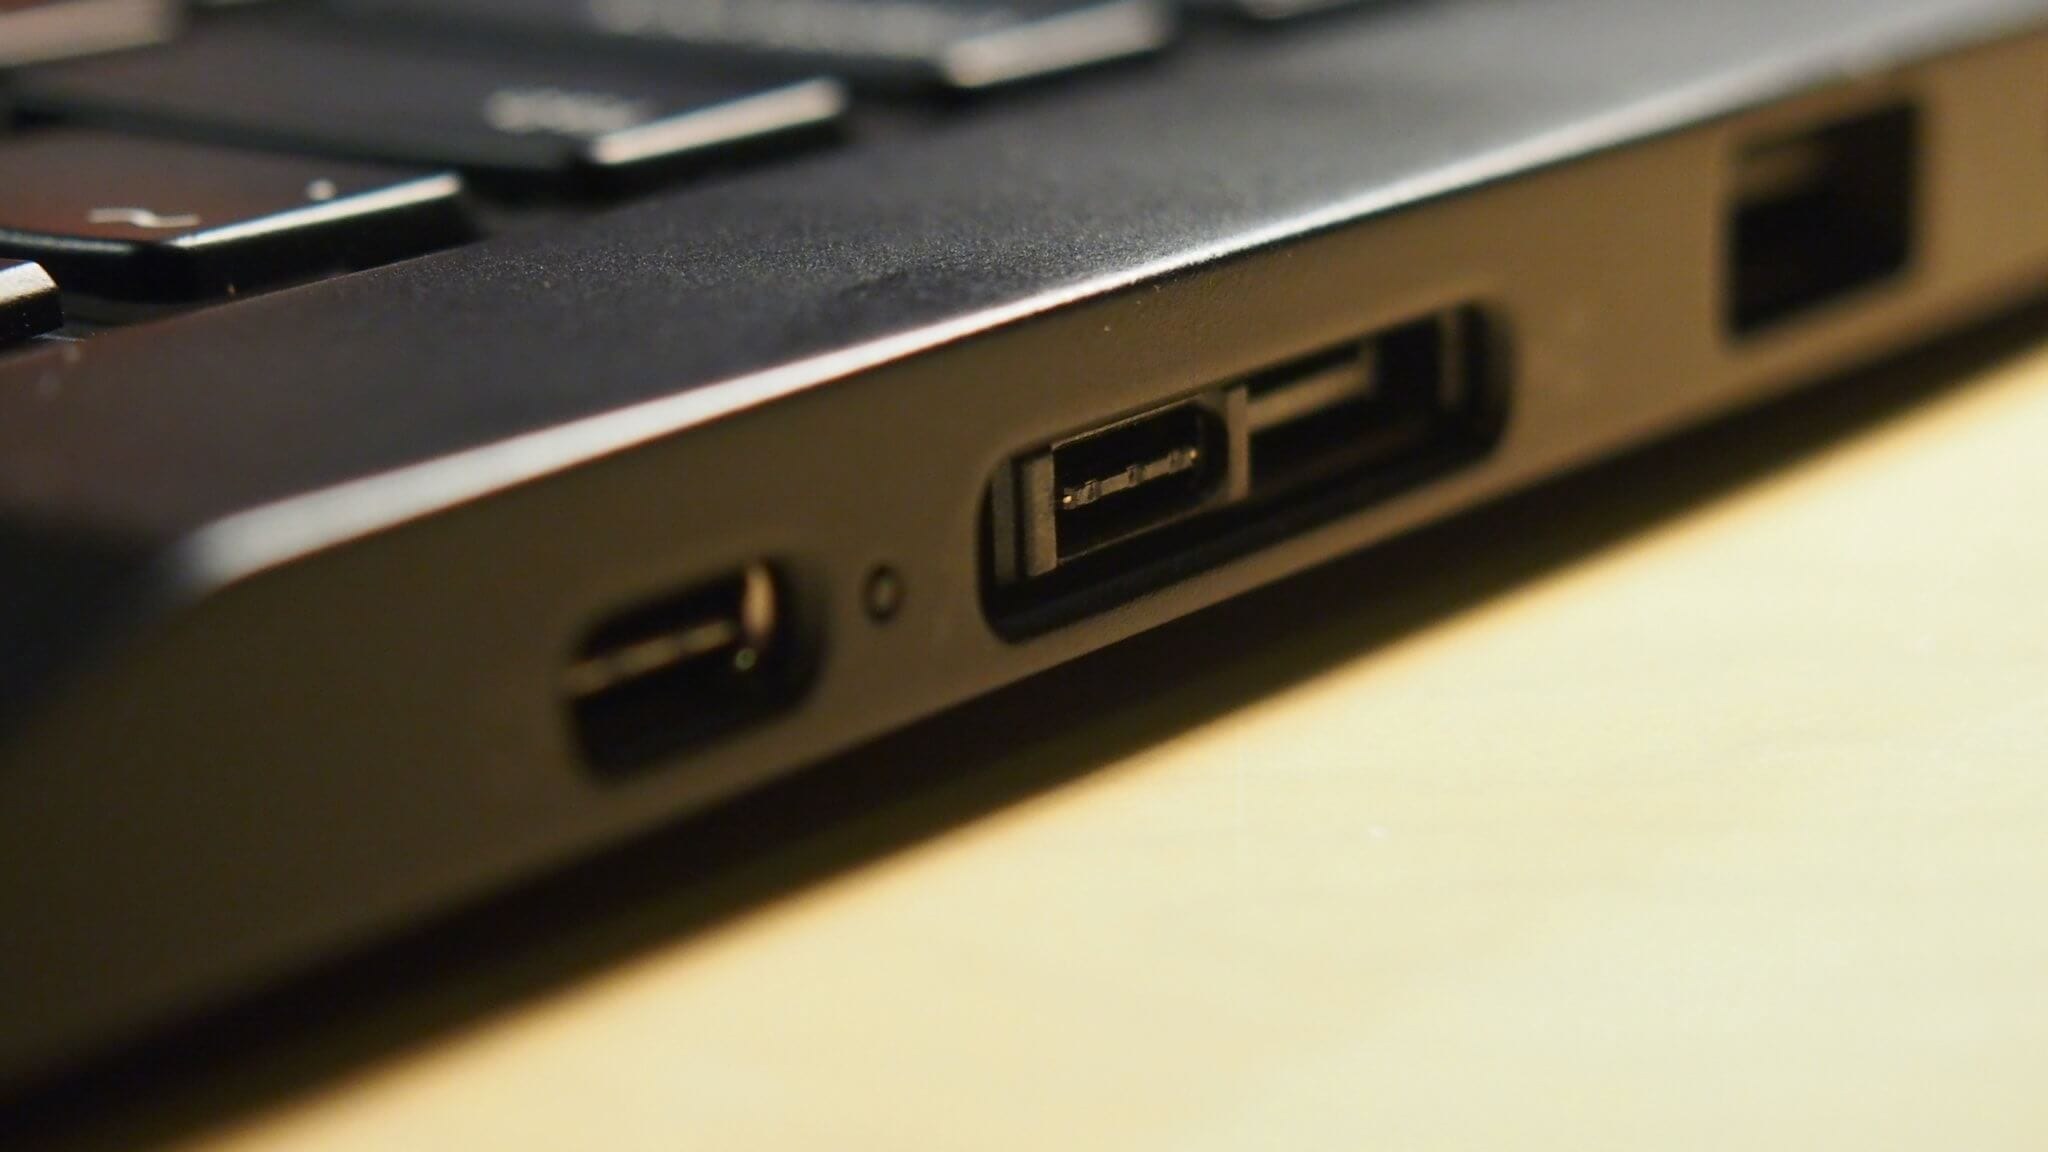 Thinkpad X13 Yoga Docking Port